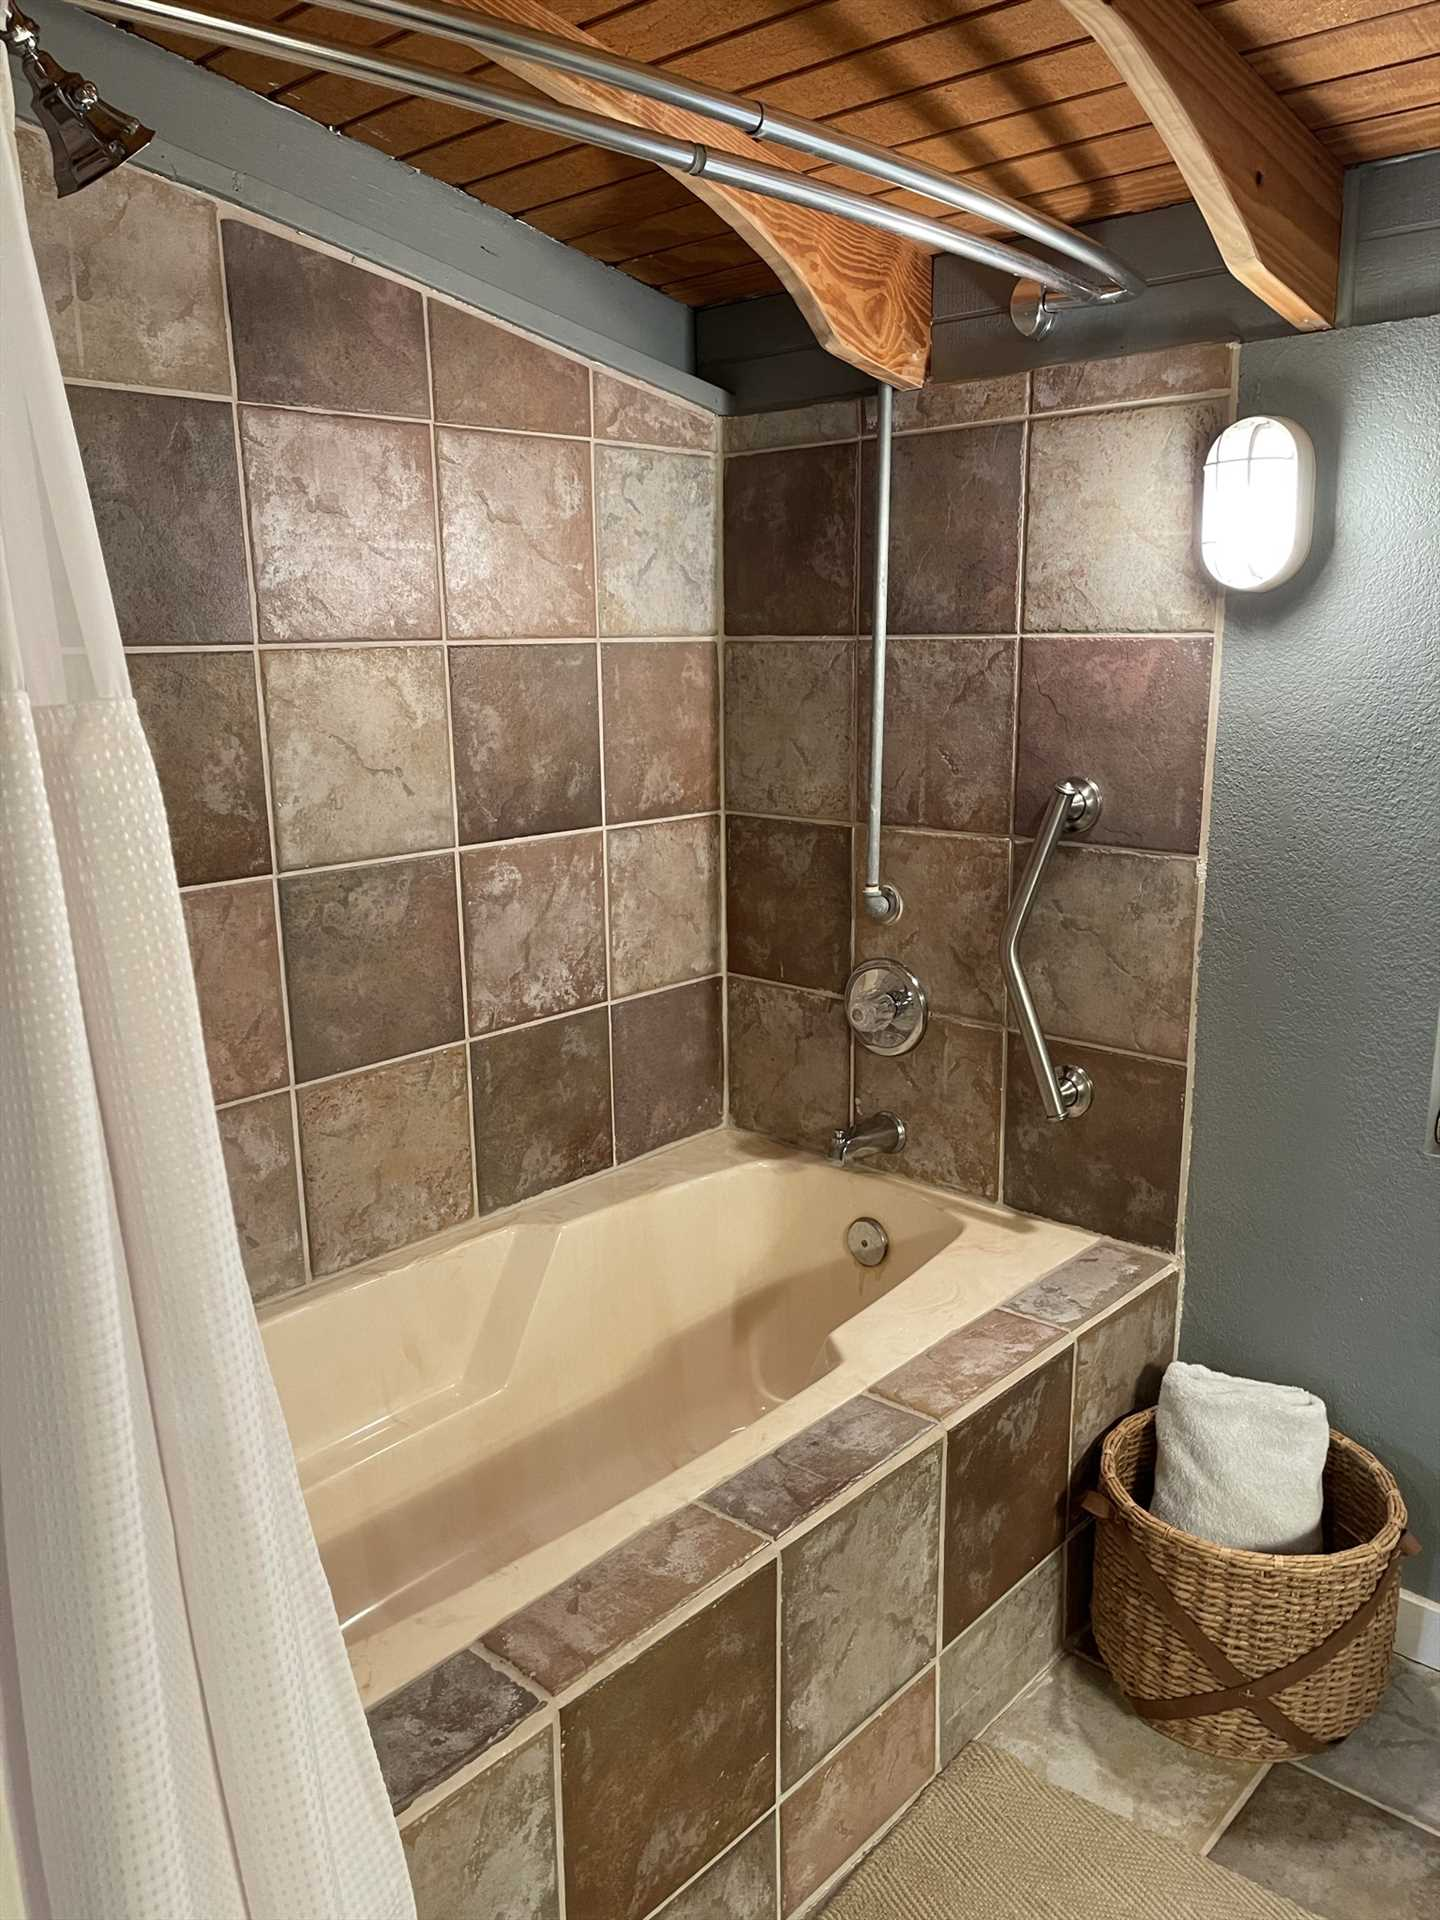 Stylish tile work and a shower/tub combo make the second bath a tidy and classy cleanup space!